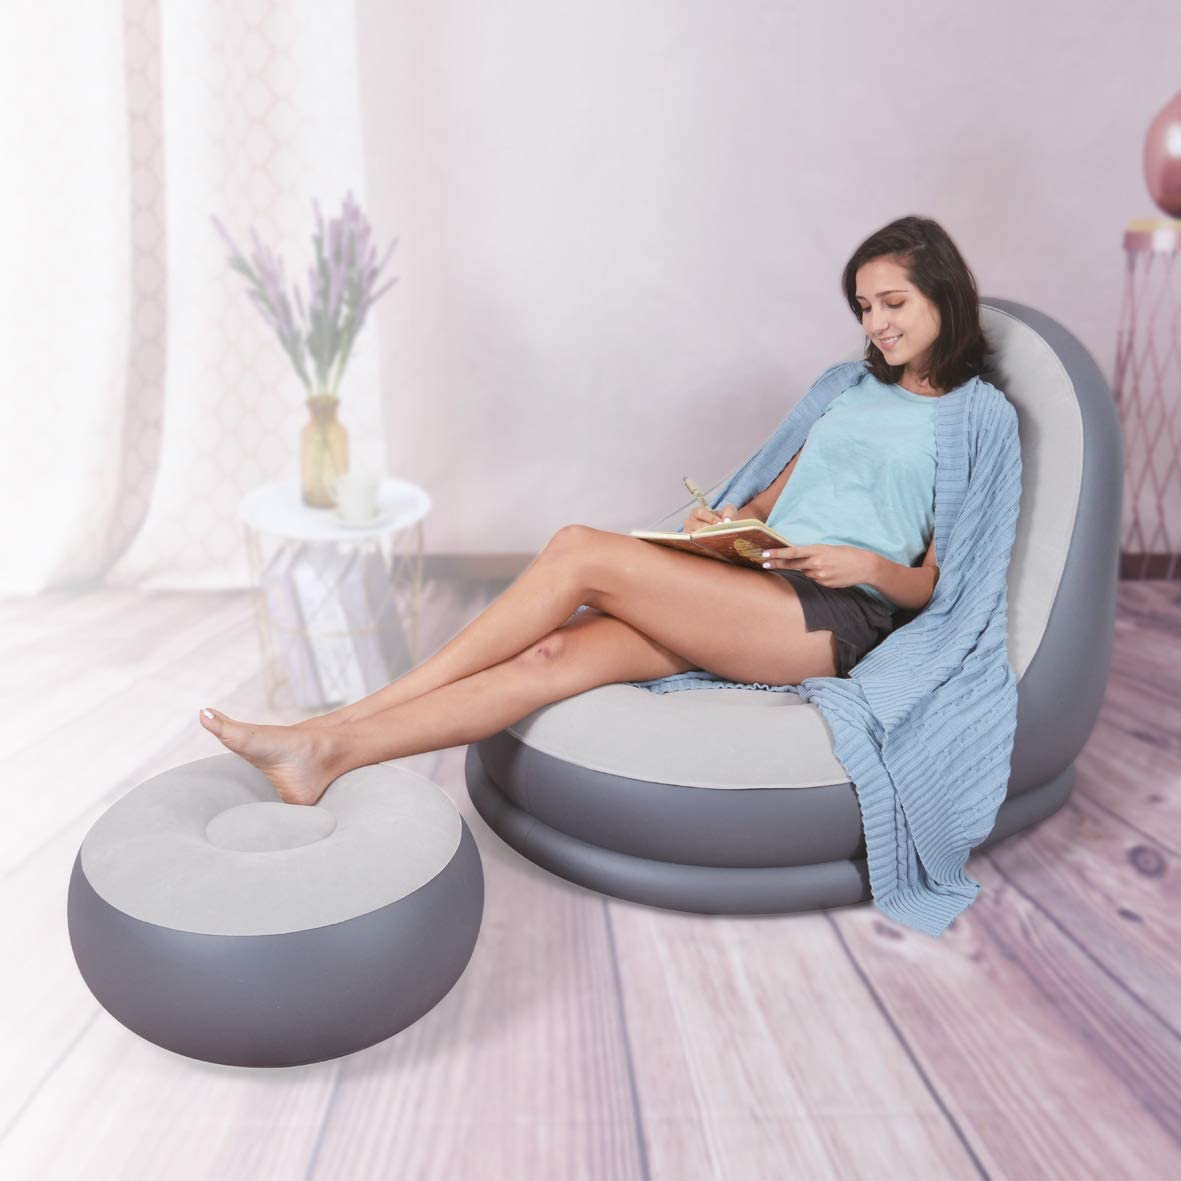 New Inflatable Deluxe Lounger /& Footstool Seat Relax Couch Ottoman Chair Lounge Fineway